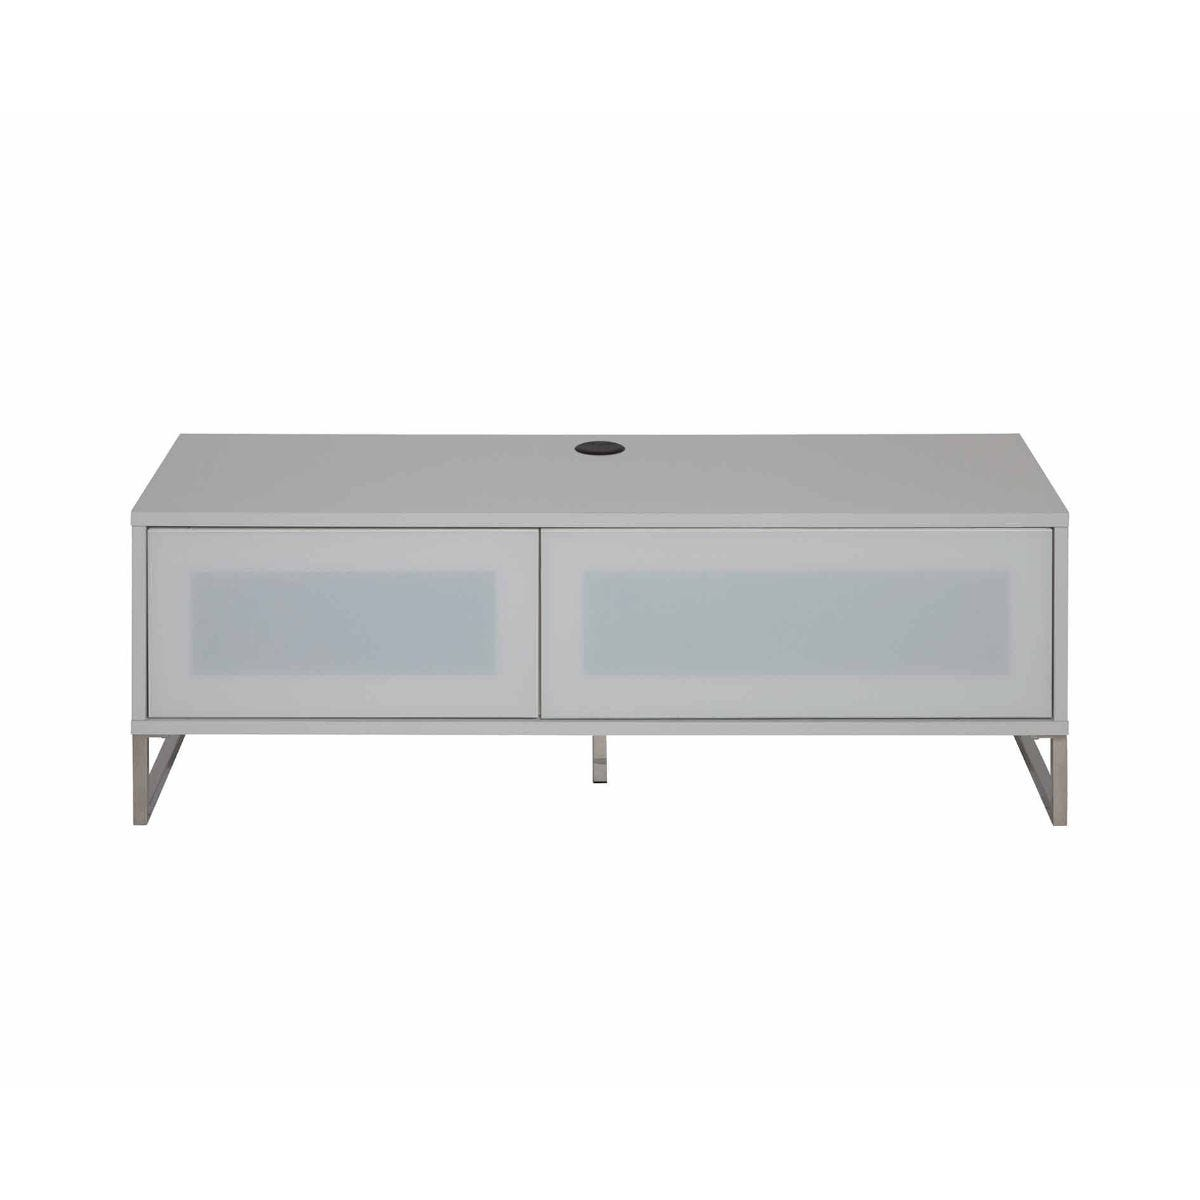 Alphason Helium Wall 1200 TV Cabinet, White